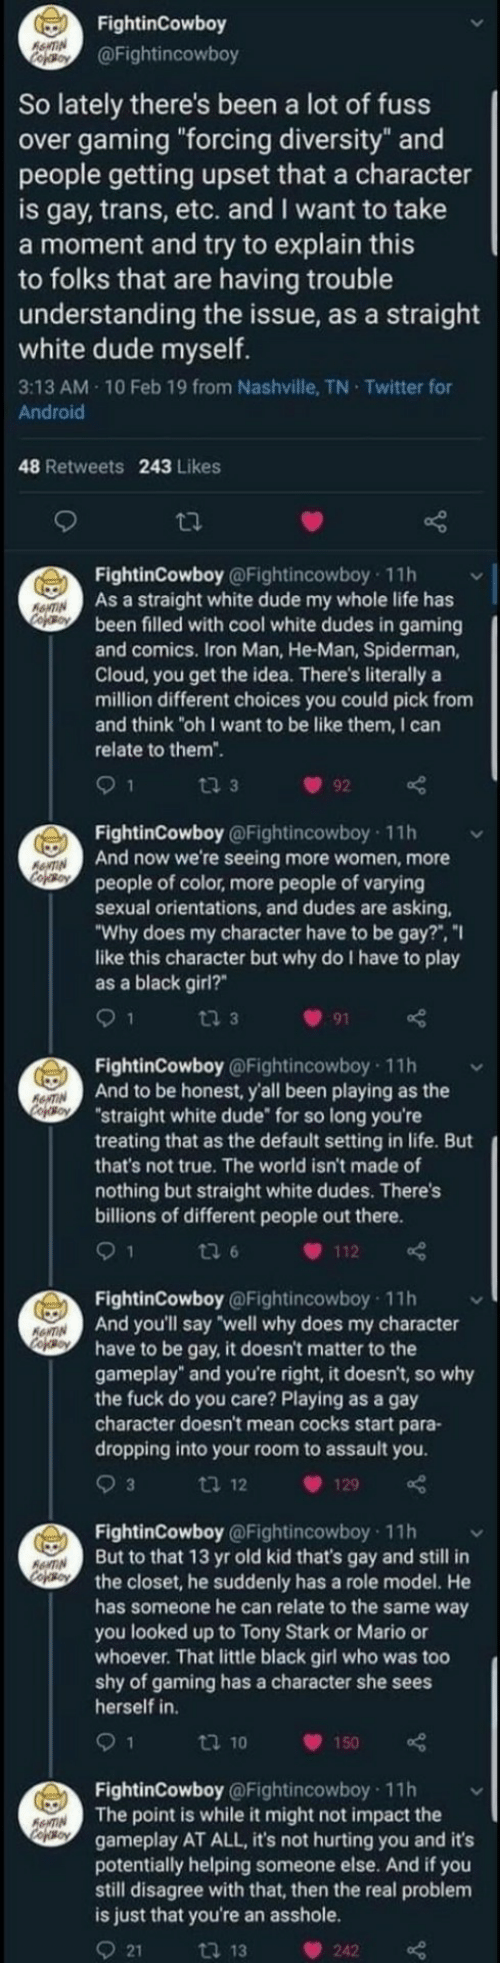 "you care: FightinCowboy  RewTIN  Cefoy  @Fightincowboy  So lately there's been a lot of fuss  over gaming ""forcing diversity"" and  people getting upset that a character  is gay, trans, etc. and I want to take  a moment and try to explain this  to folks that are having trouble  understanding the issue, as a straight  white dude myself.  3:13 AM 10 Feb 19 from Nashville, TN Twitter for  Android  48 Retweets 243 Likes  FightinCowboy @Fightincowboy 11h  As a straight white dude my whole life has  been filled with cool white dudes in gaming  and comics. Iron Man, He-Man, Spiderman,  Cloud, you get the idea. There's literally a  million different choices you could pick from  and think ""oh I want to be like them, I can  ANTIN  Cooy  relate to them"".  ti 3  92  FightinCowboy @Fightincowboy 11h  And now we're seeing more women, more  people of color, more people of varying  sexual orientations, and dudes are asking  ""Why does my character have to be gay?"", ""I  like this character but why do I have to play  as a black girl?  ANTIN  CofoBoy  9 1  ti 3  91  FightinCowboy @Fightincowboy 11h  And to be honest, y'all been playing as the  ""straight white dude for so long you're  treating that as the default setting in life. But  that's not true. The world isn't made of  RNTIN  CopOBoY  nothing but straight white dudes. There's  billions of different people out there.  1  ti 6  112  FightinCowboy @Fightincowboy 11h  And you'll say well why does my character  have to be gay, it doesn't matter to the  gameplay"" and you're right, it doesn't, so why  the fuck do you care? Playing as a gay  character doesn't mean cocks start para-  dropping into your room to assault you  ANTIN  cofeo  3  ti 12  129  FightinCowboy @Fightincowboy 11h  But to that 13 yr old kid that's gay and still in  the closet, he suddenly has a role model. He  has someone he can relate to the same way  you looked up to Tony Stark or Mario or  whoever. That little black girl who was too  shy of gaming has a character she sees  herself in  AANTIN  Cojso  9 1  t 10  150  FightinCowboy @Fightincowboy 11h  The point is while it might not impact the  gameplay AT ALL, it's not hurting you and it's  potentially helping someone else. And if you  still disagree with that, then the real problem  is just that you're an asshole.  AeNTIN  Cofeso  21  ti 13  242"